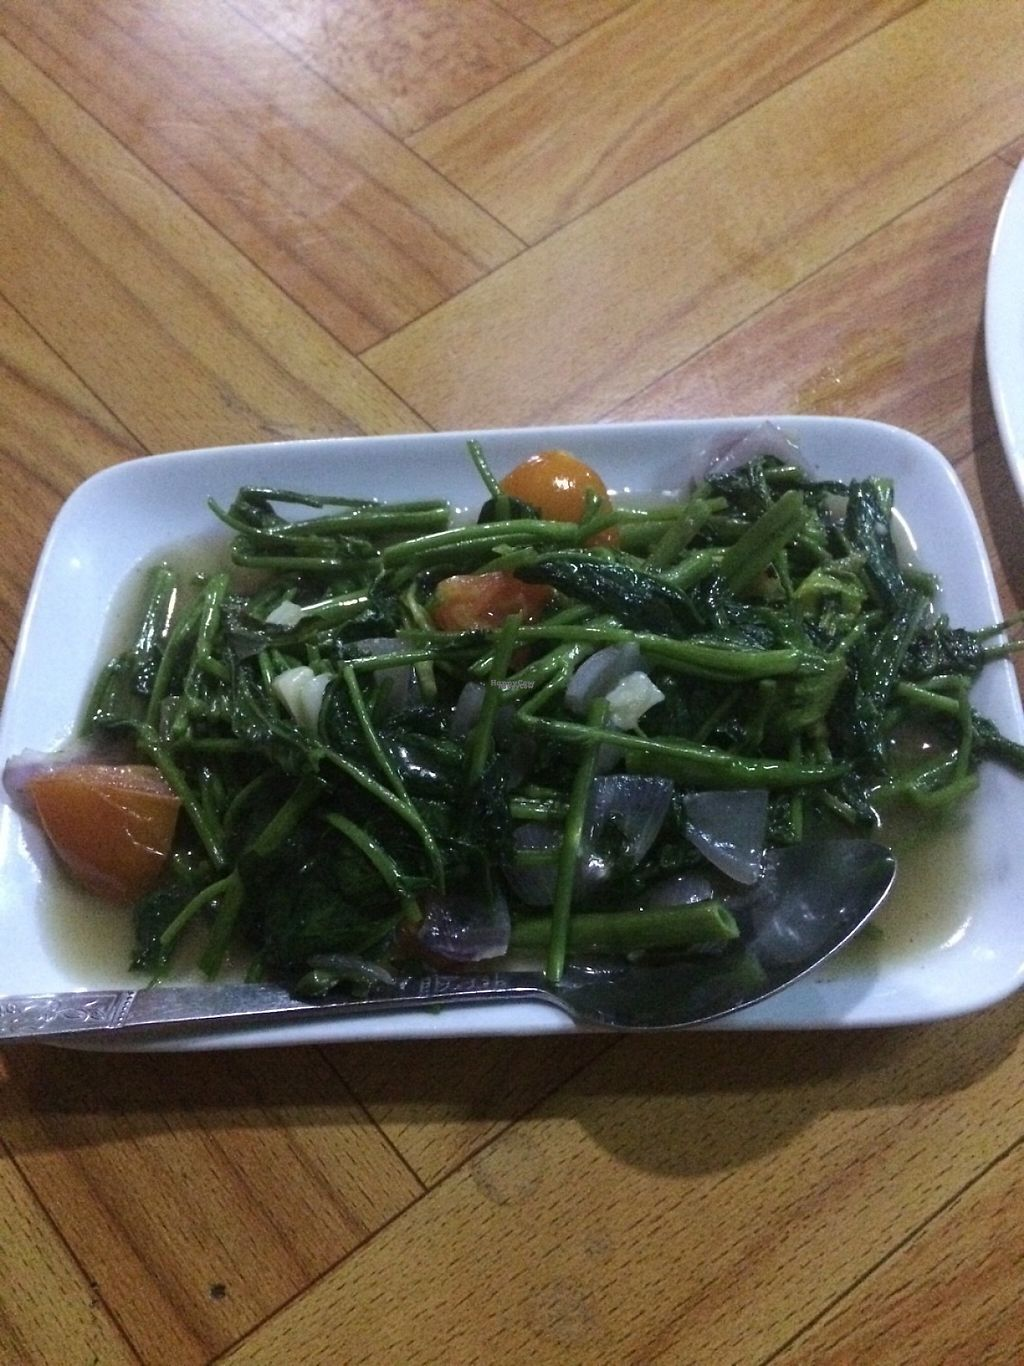 """Photo of Moe Pyae San Vegetarian Restaurant  by <a href=""""/members/profile/Cyclinggal"""">Cyclinggal</a> <br/>Fried water grass <br/> March 29, 2017  - <a href='/contact/abuse/image/67267/242376'>Report</a>"""